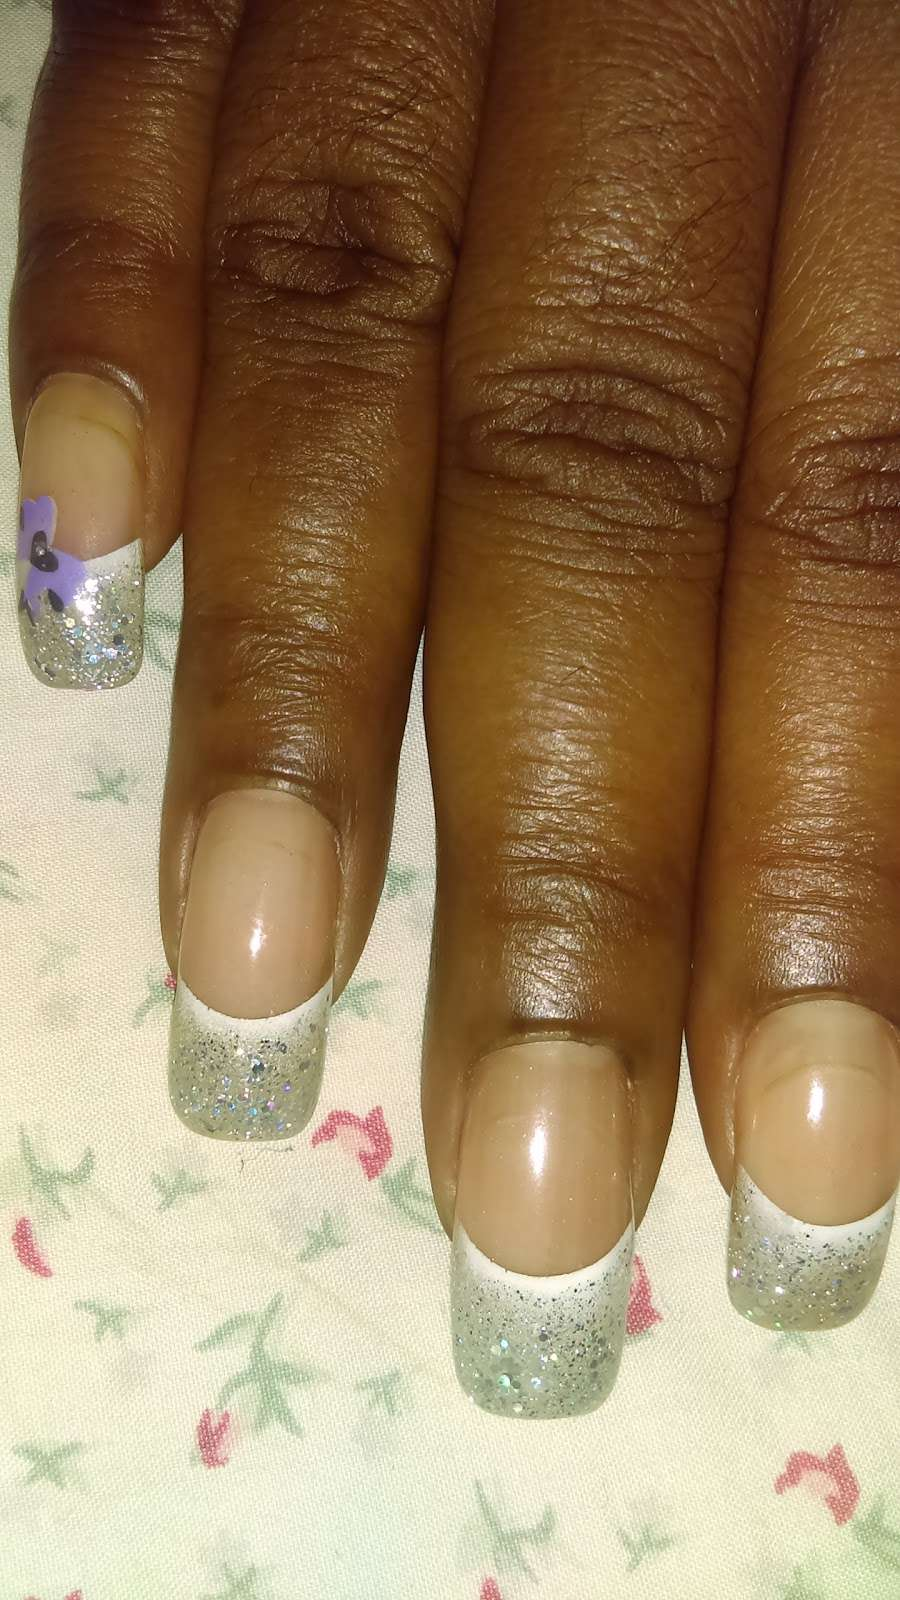 Signature Nail Spa - hair care  | Photo 9 of 9 | Address: 950 Admiral Callaghan Ln, Vallejo, CA 94591, USA | Phone: (707) 649-8989